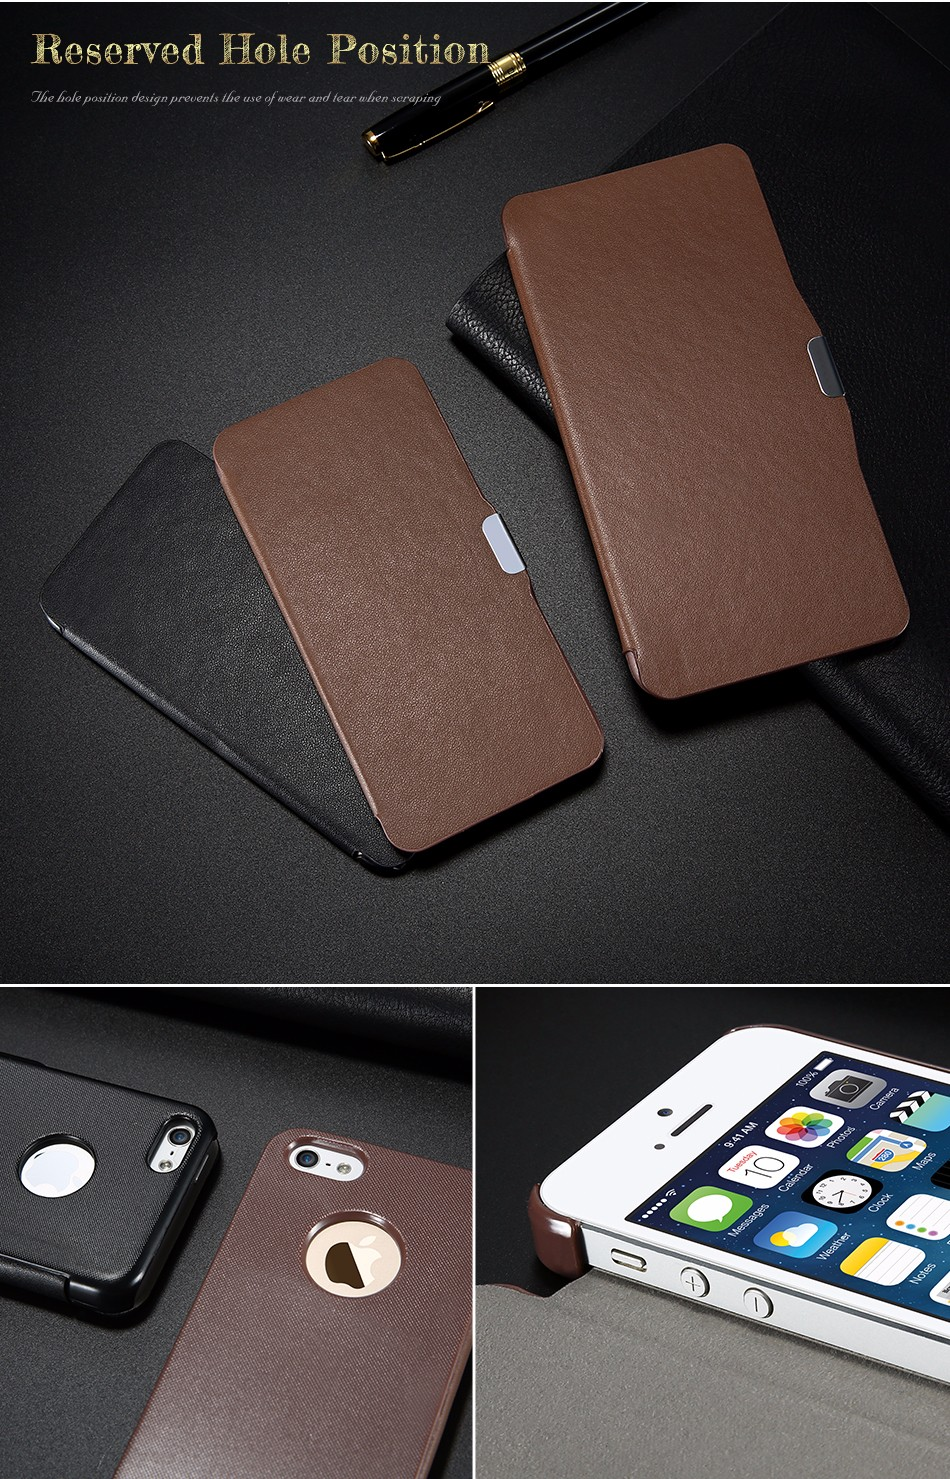 leather case for iPhone 5 6 (6)